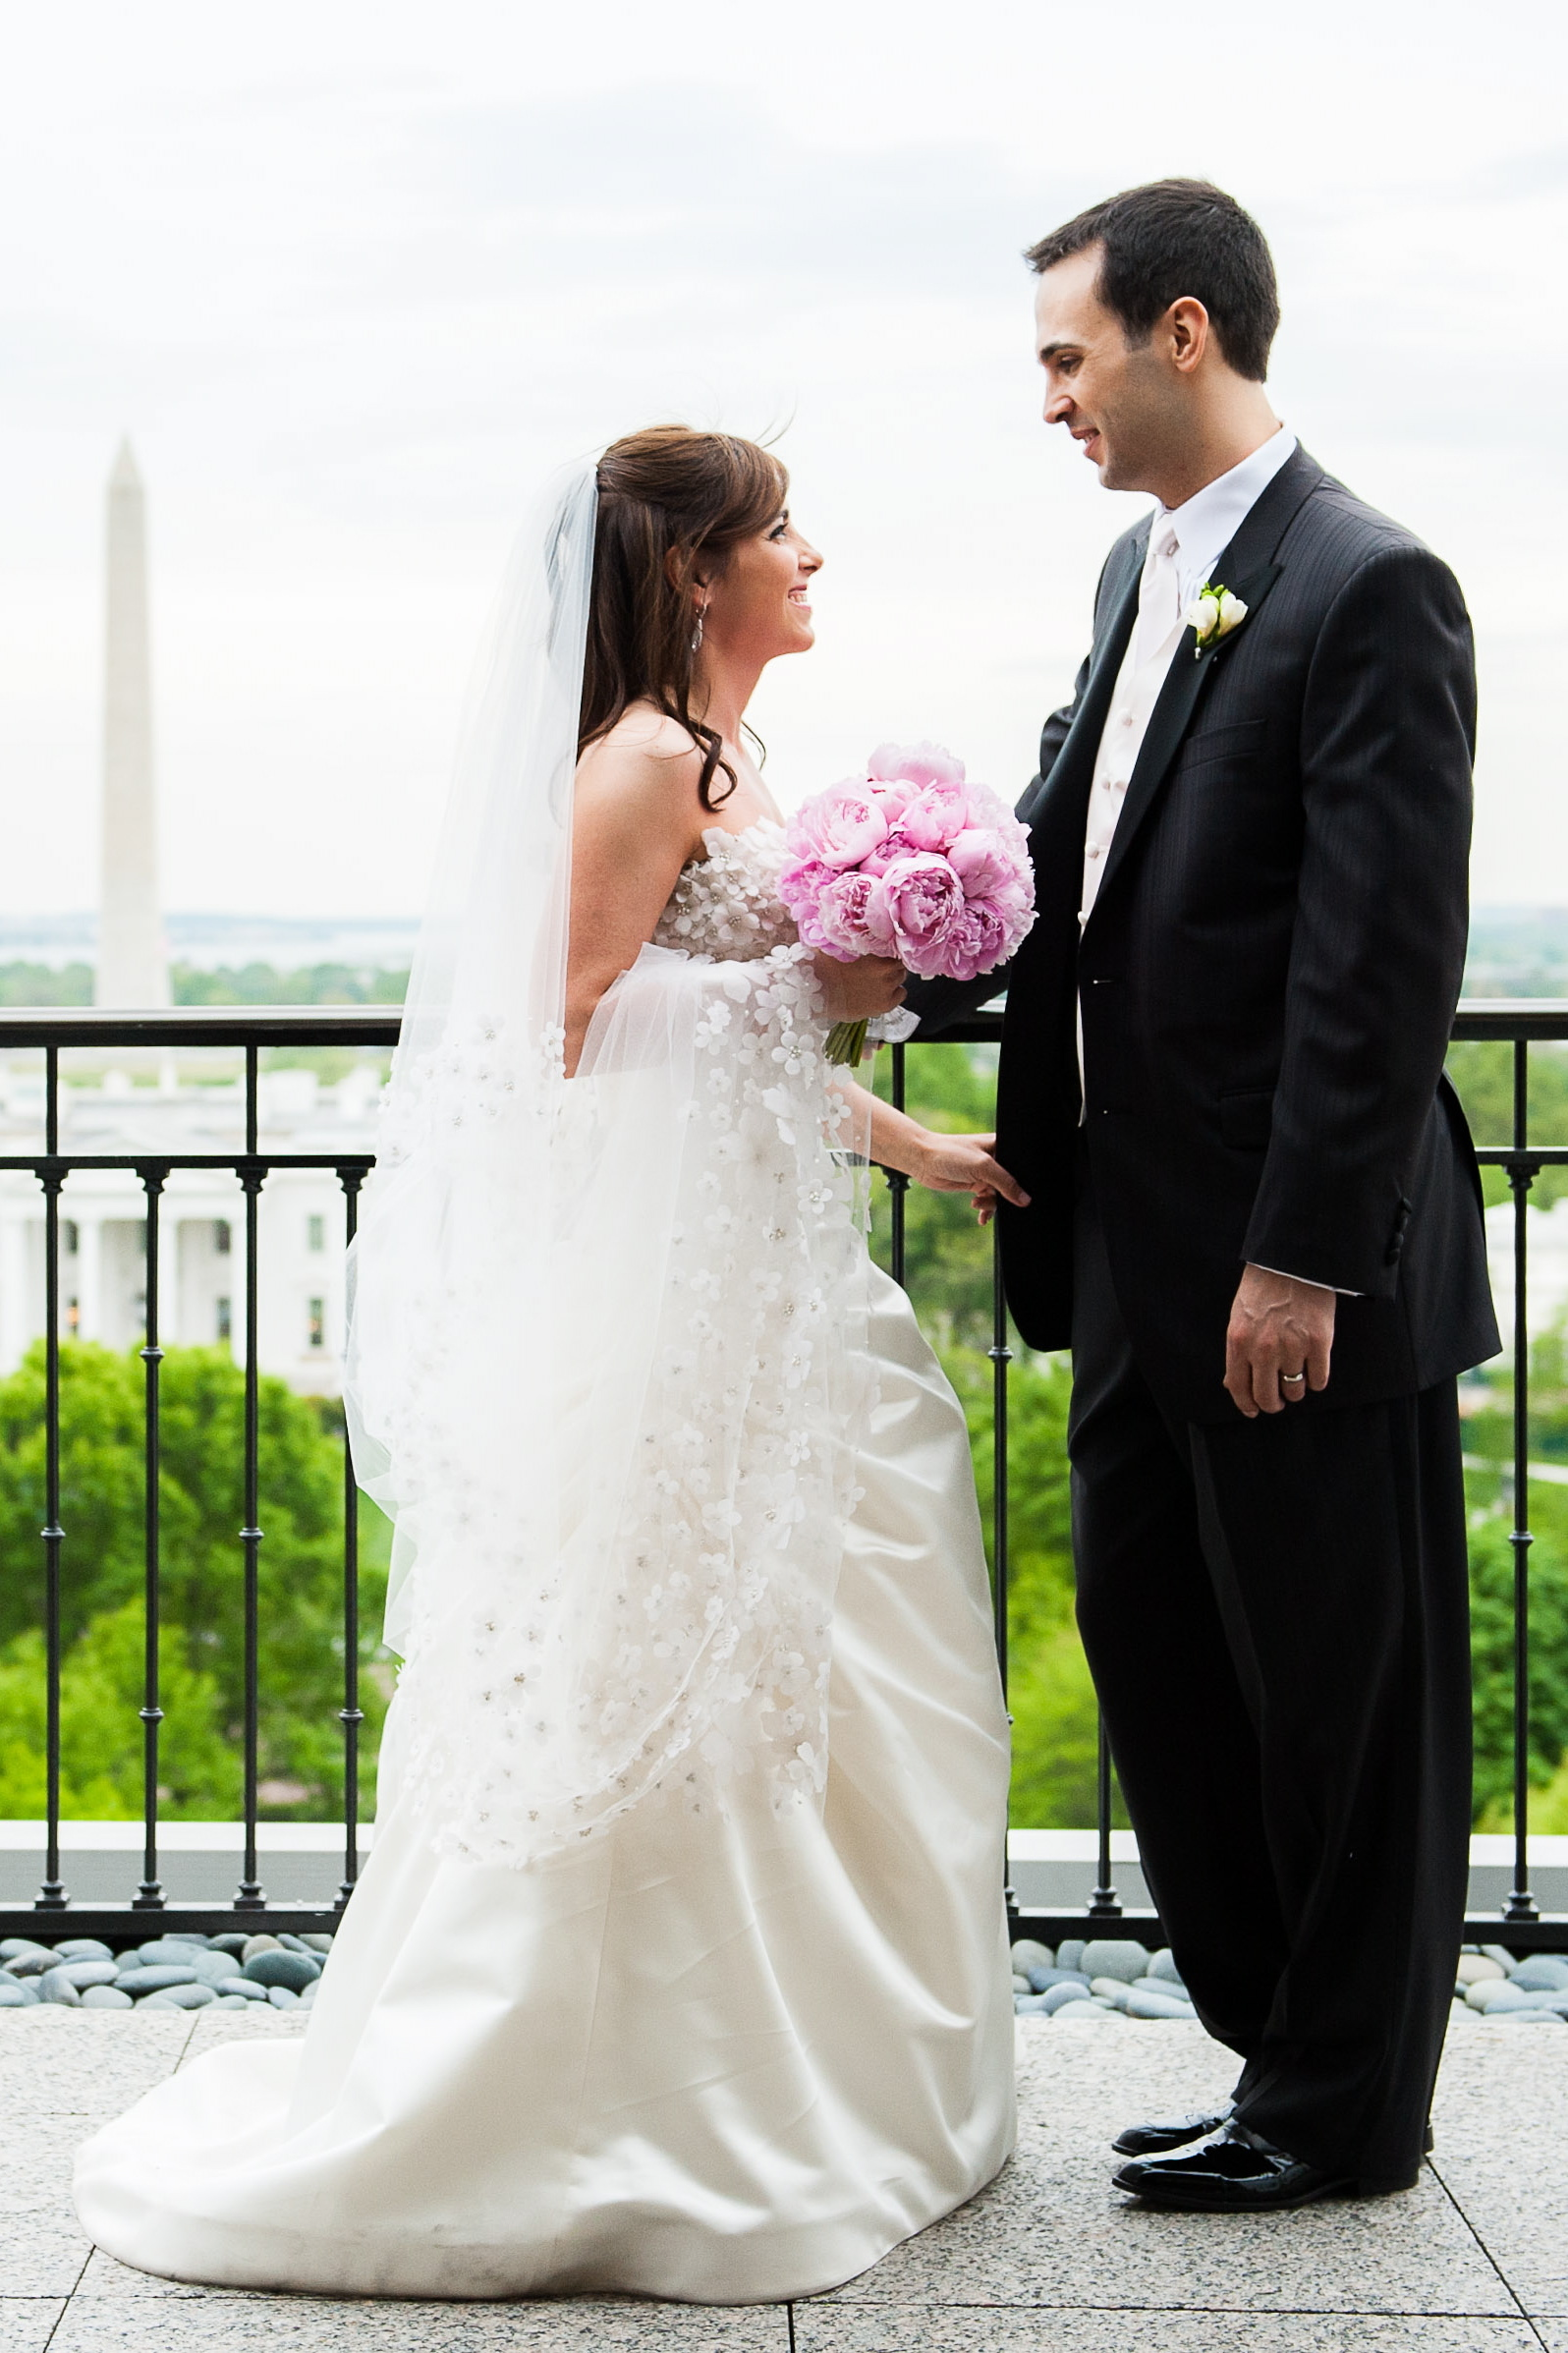 pink, Bride, Bouquet, Groom, Monument, Elizabeth andrew